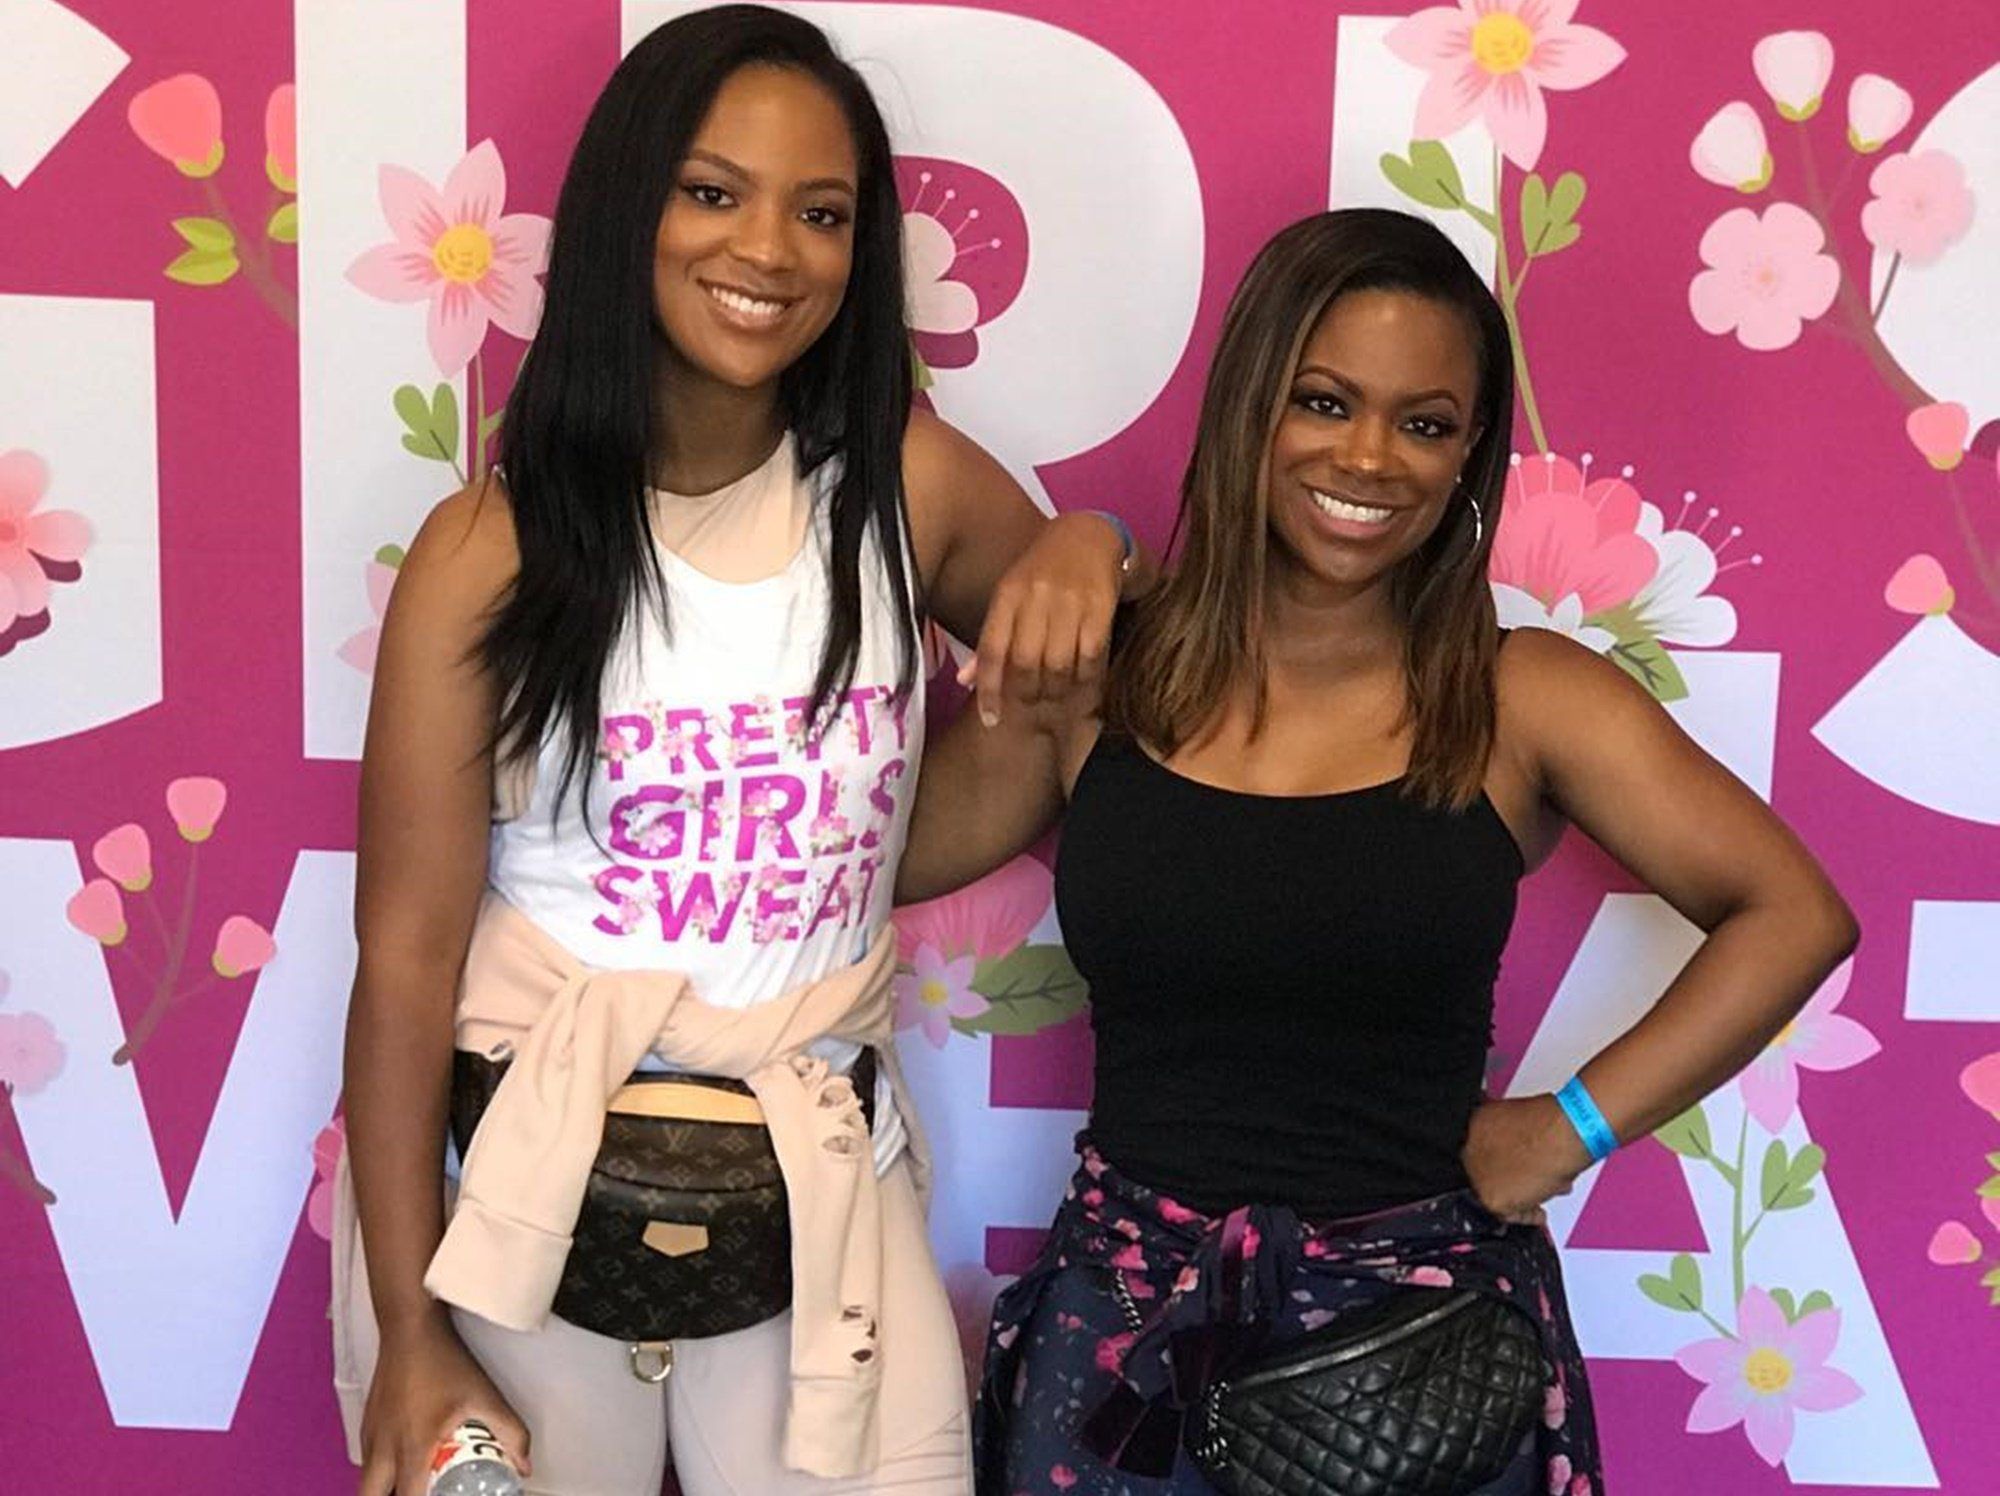 Kandi Burruss Shares A Sweet Clip Featuring Her Daughter, Riley Burruss While They Were At The Recent Fendi Event